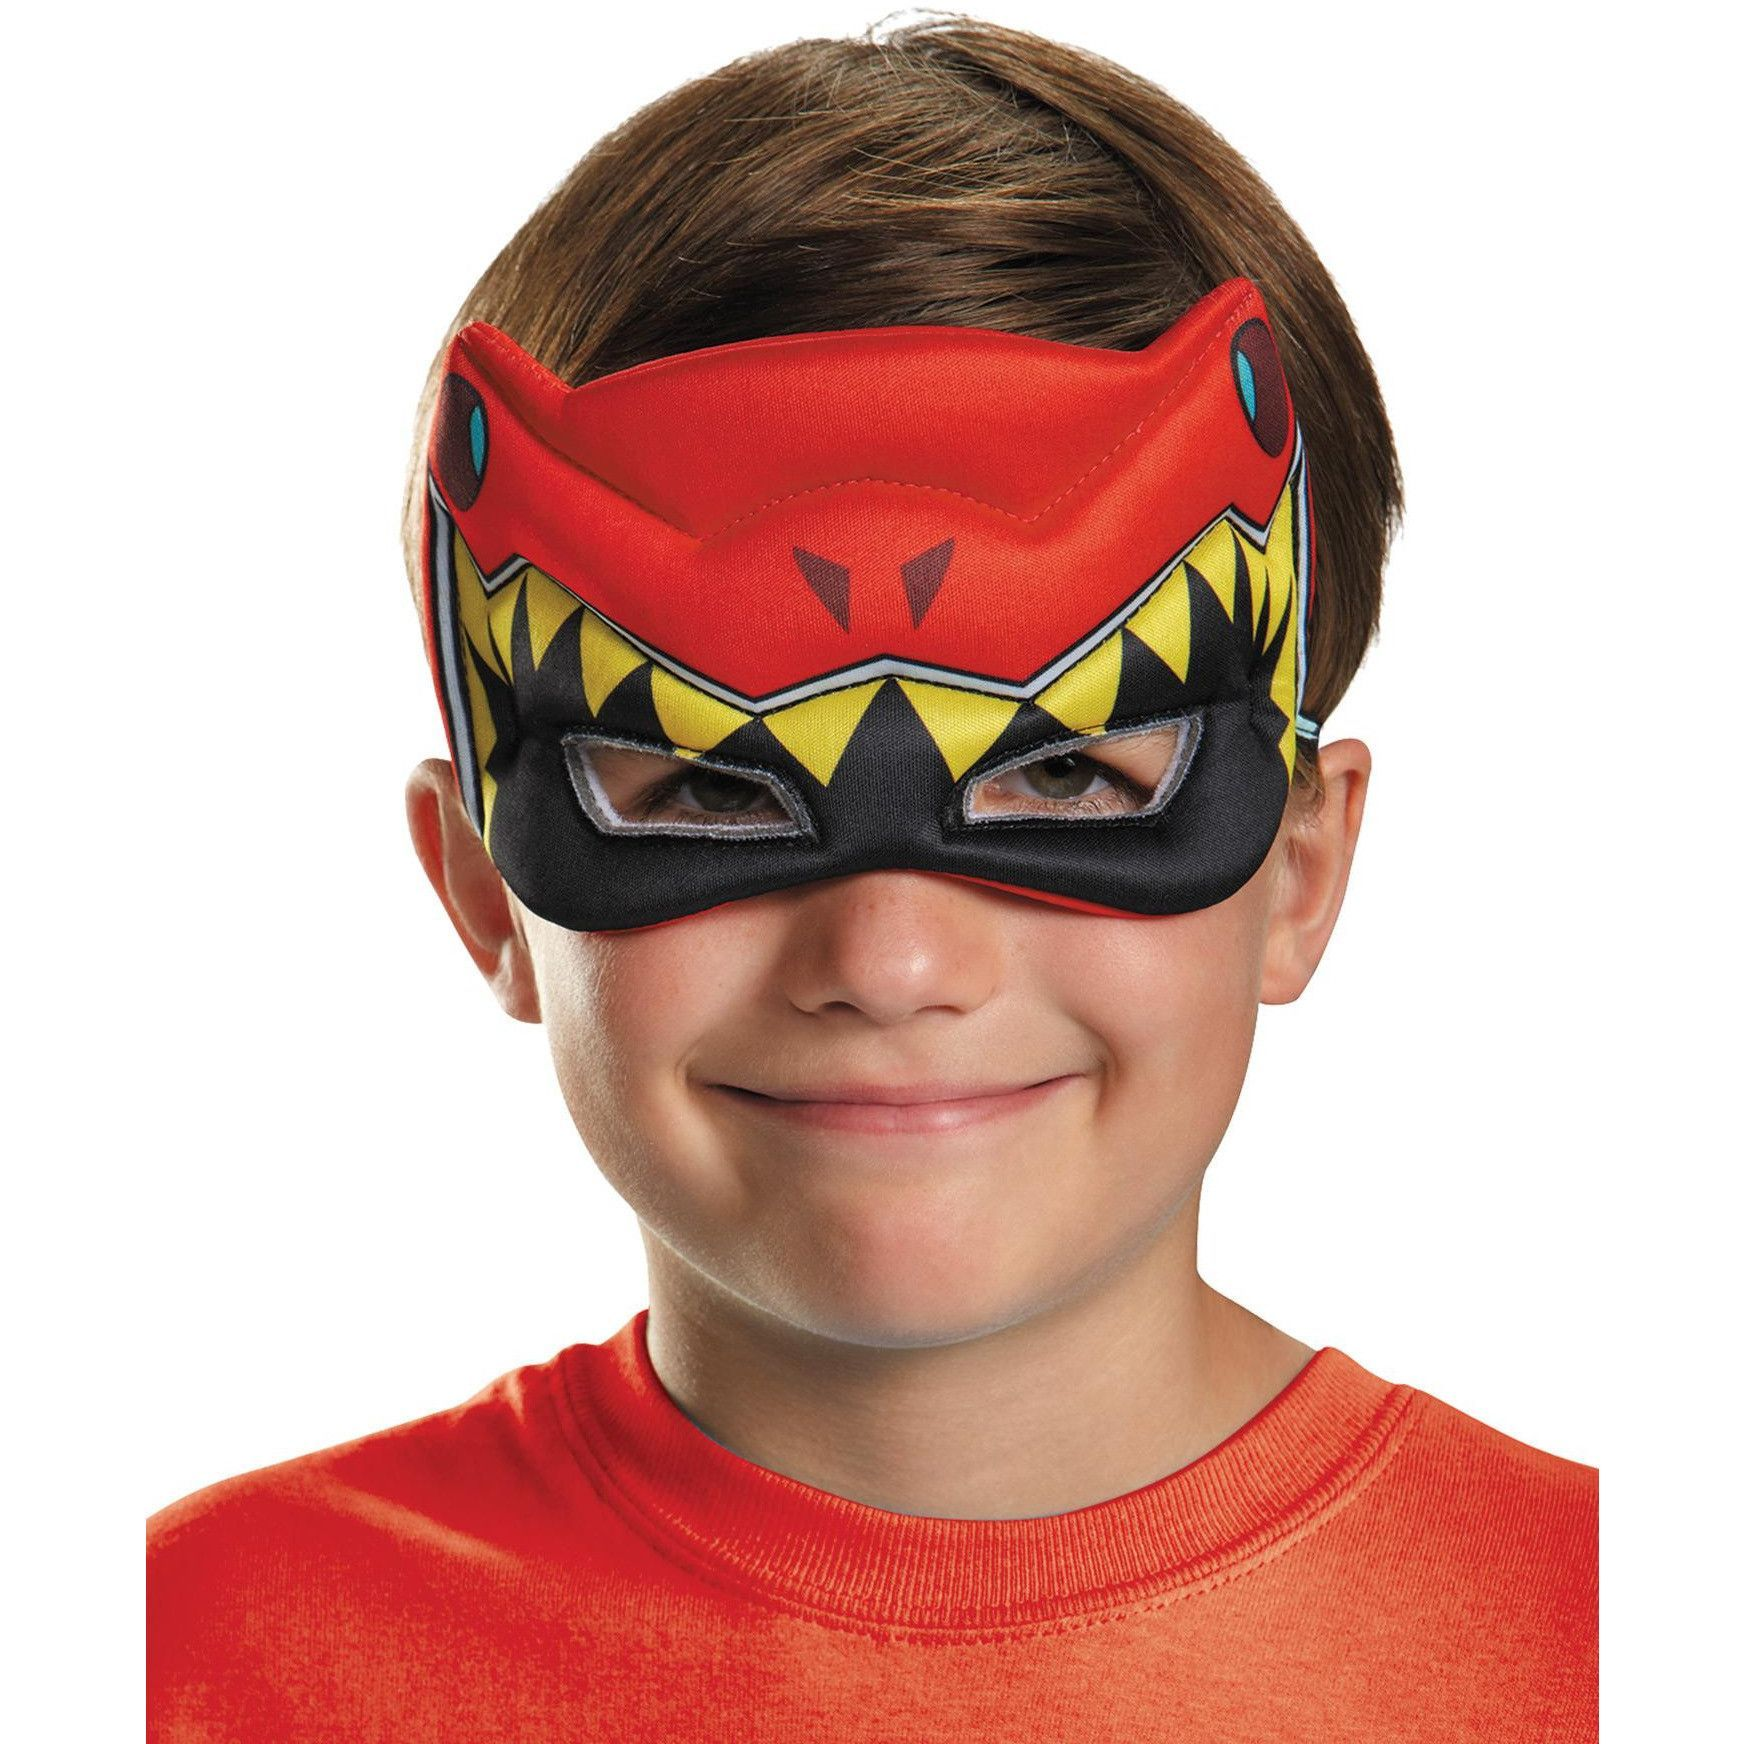 Red Ranger Dino Puffy Mask   Products, Ranger and Masks